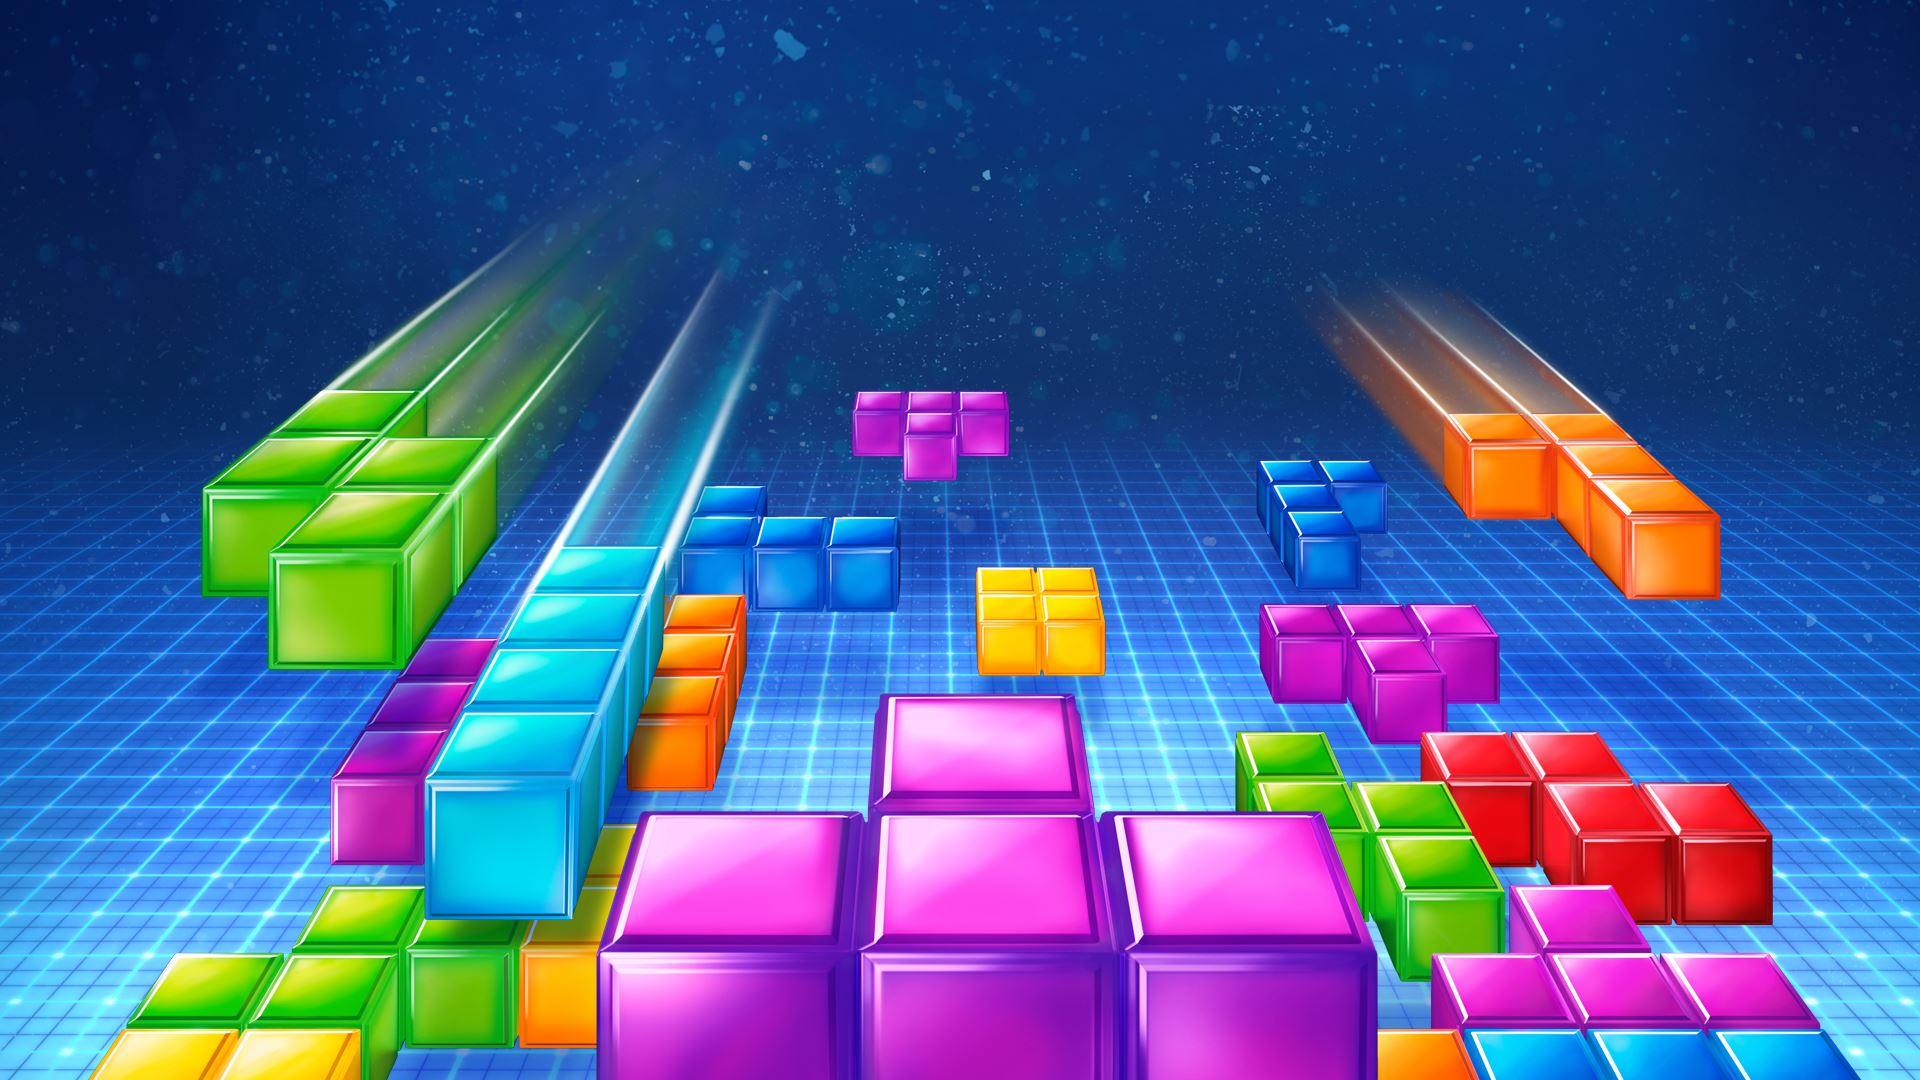 Awesome Quotes Wallpapers Free Download Tetris Wallpaper Hd Pixelstalk Net